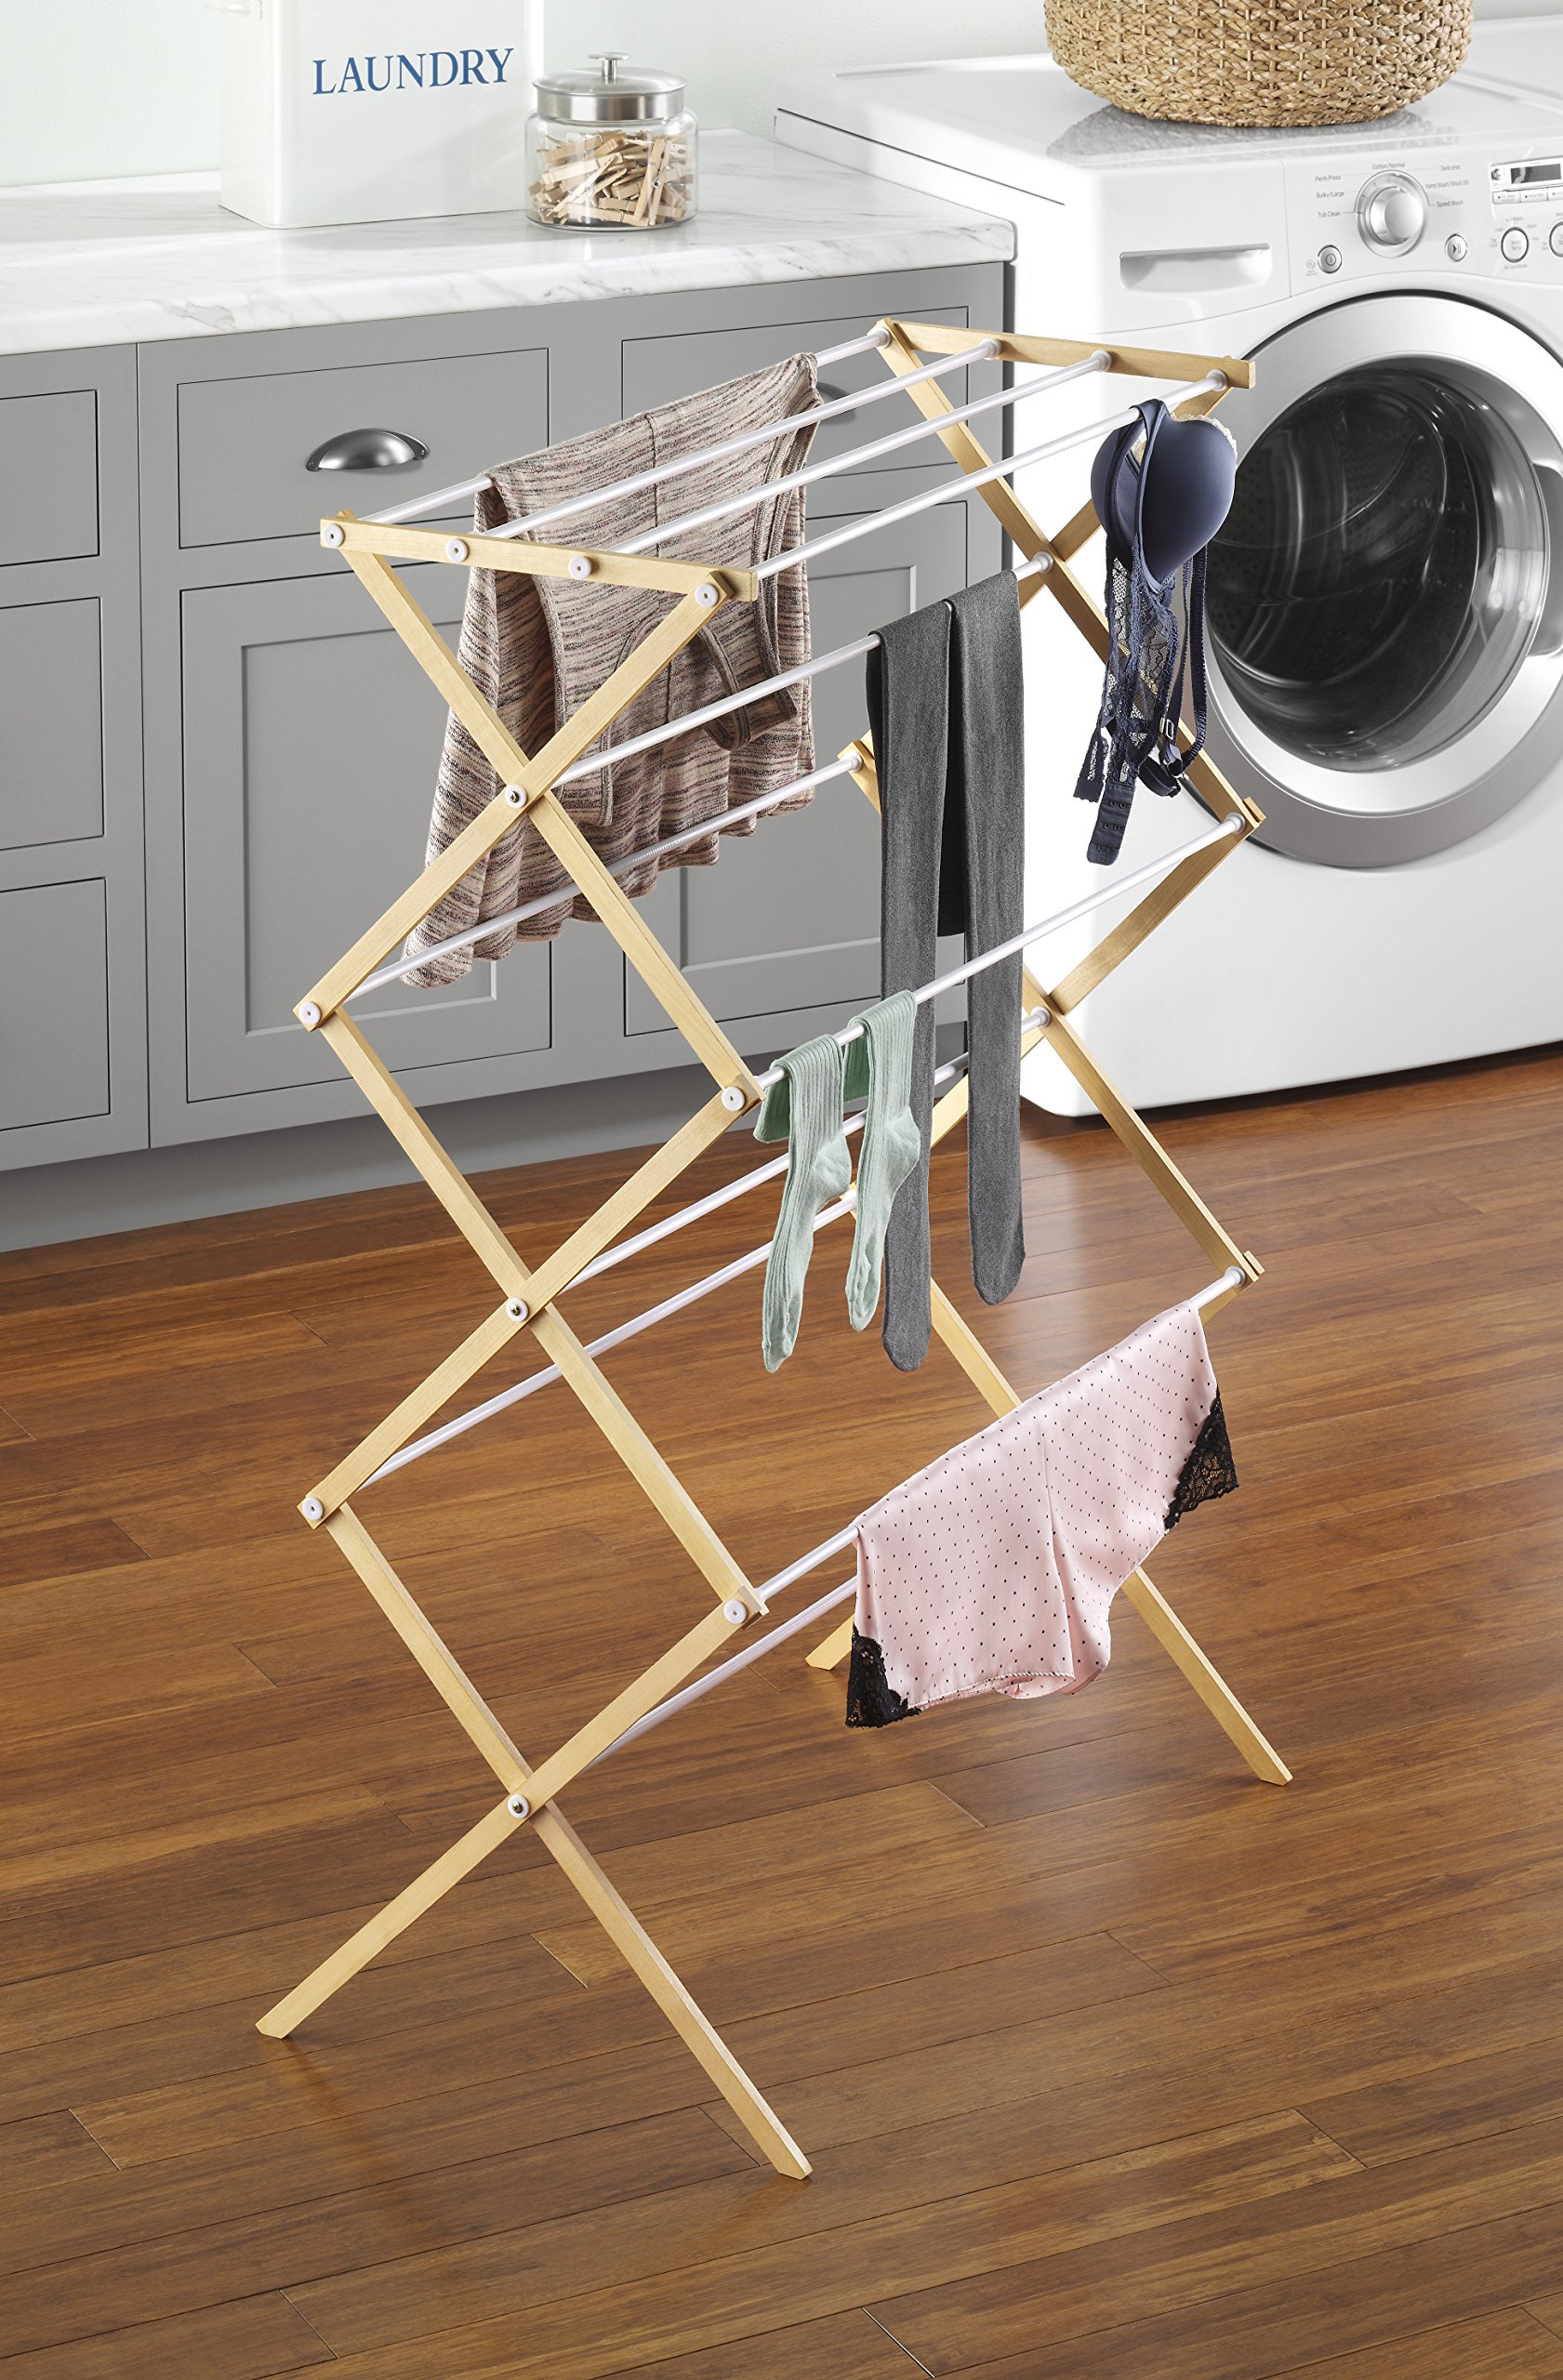 Whitmor Natural Wood Drying Rack - Natural Wood Drying Rack includes 11 bars for drying space For indoor and outdoor use Designed to drop open and lock into position - laundry-room, entryway-laundry-room, drying-racks - 91VysRLV1rL -